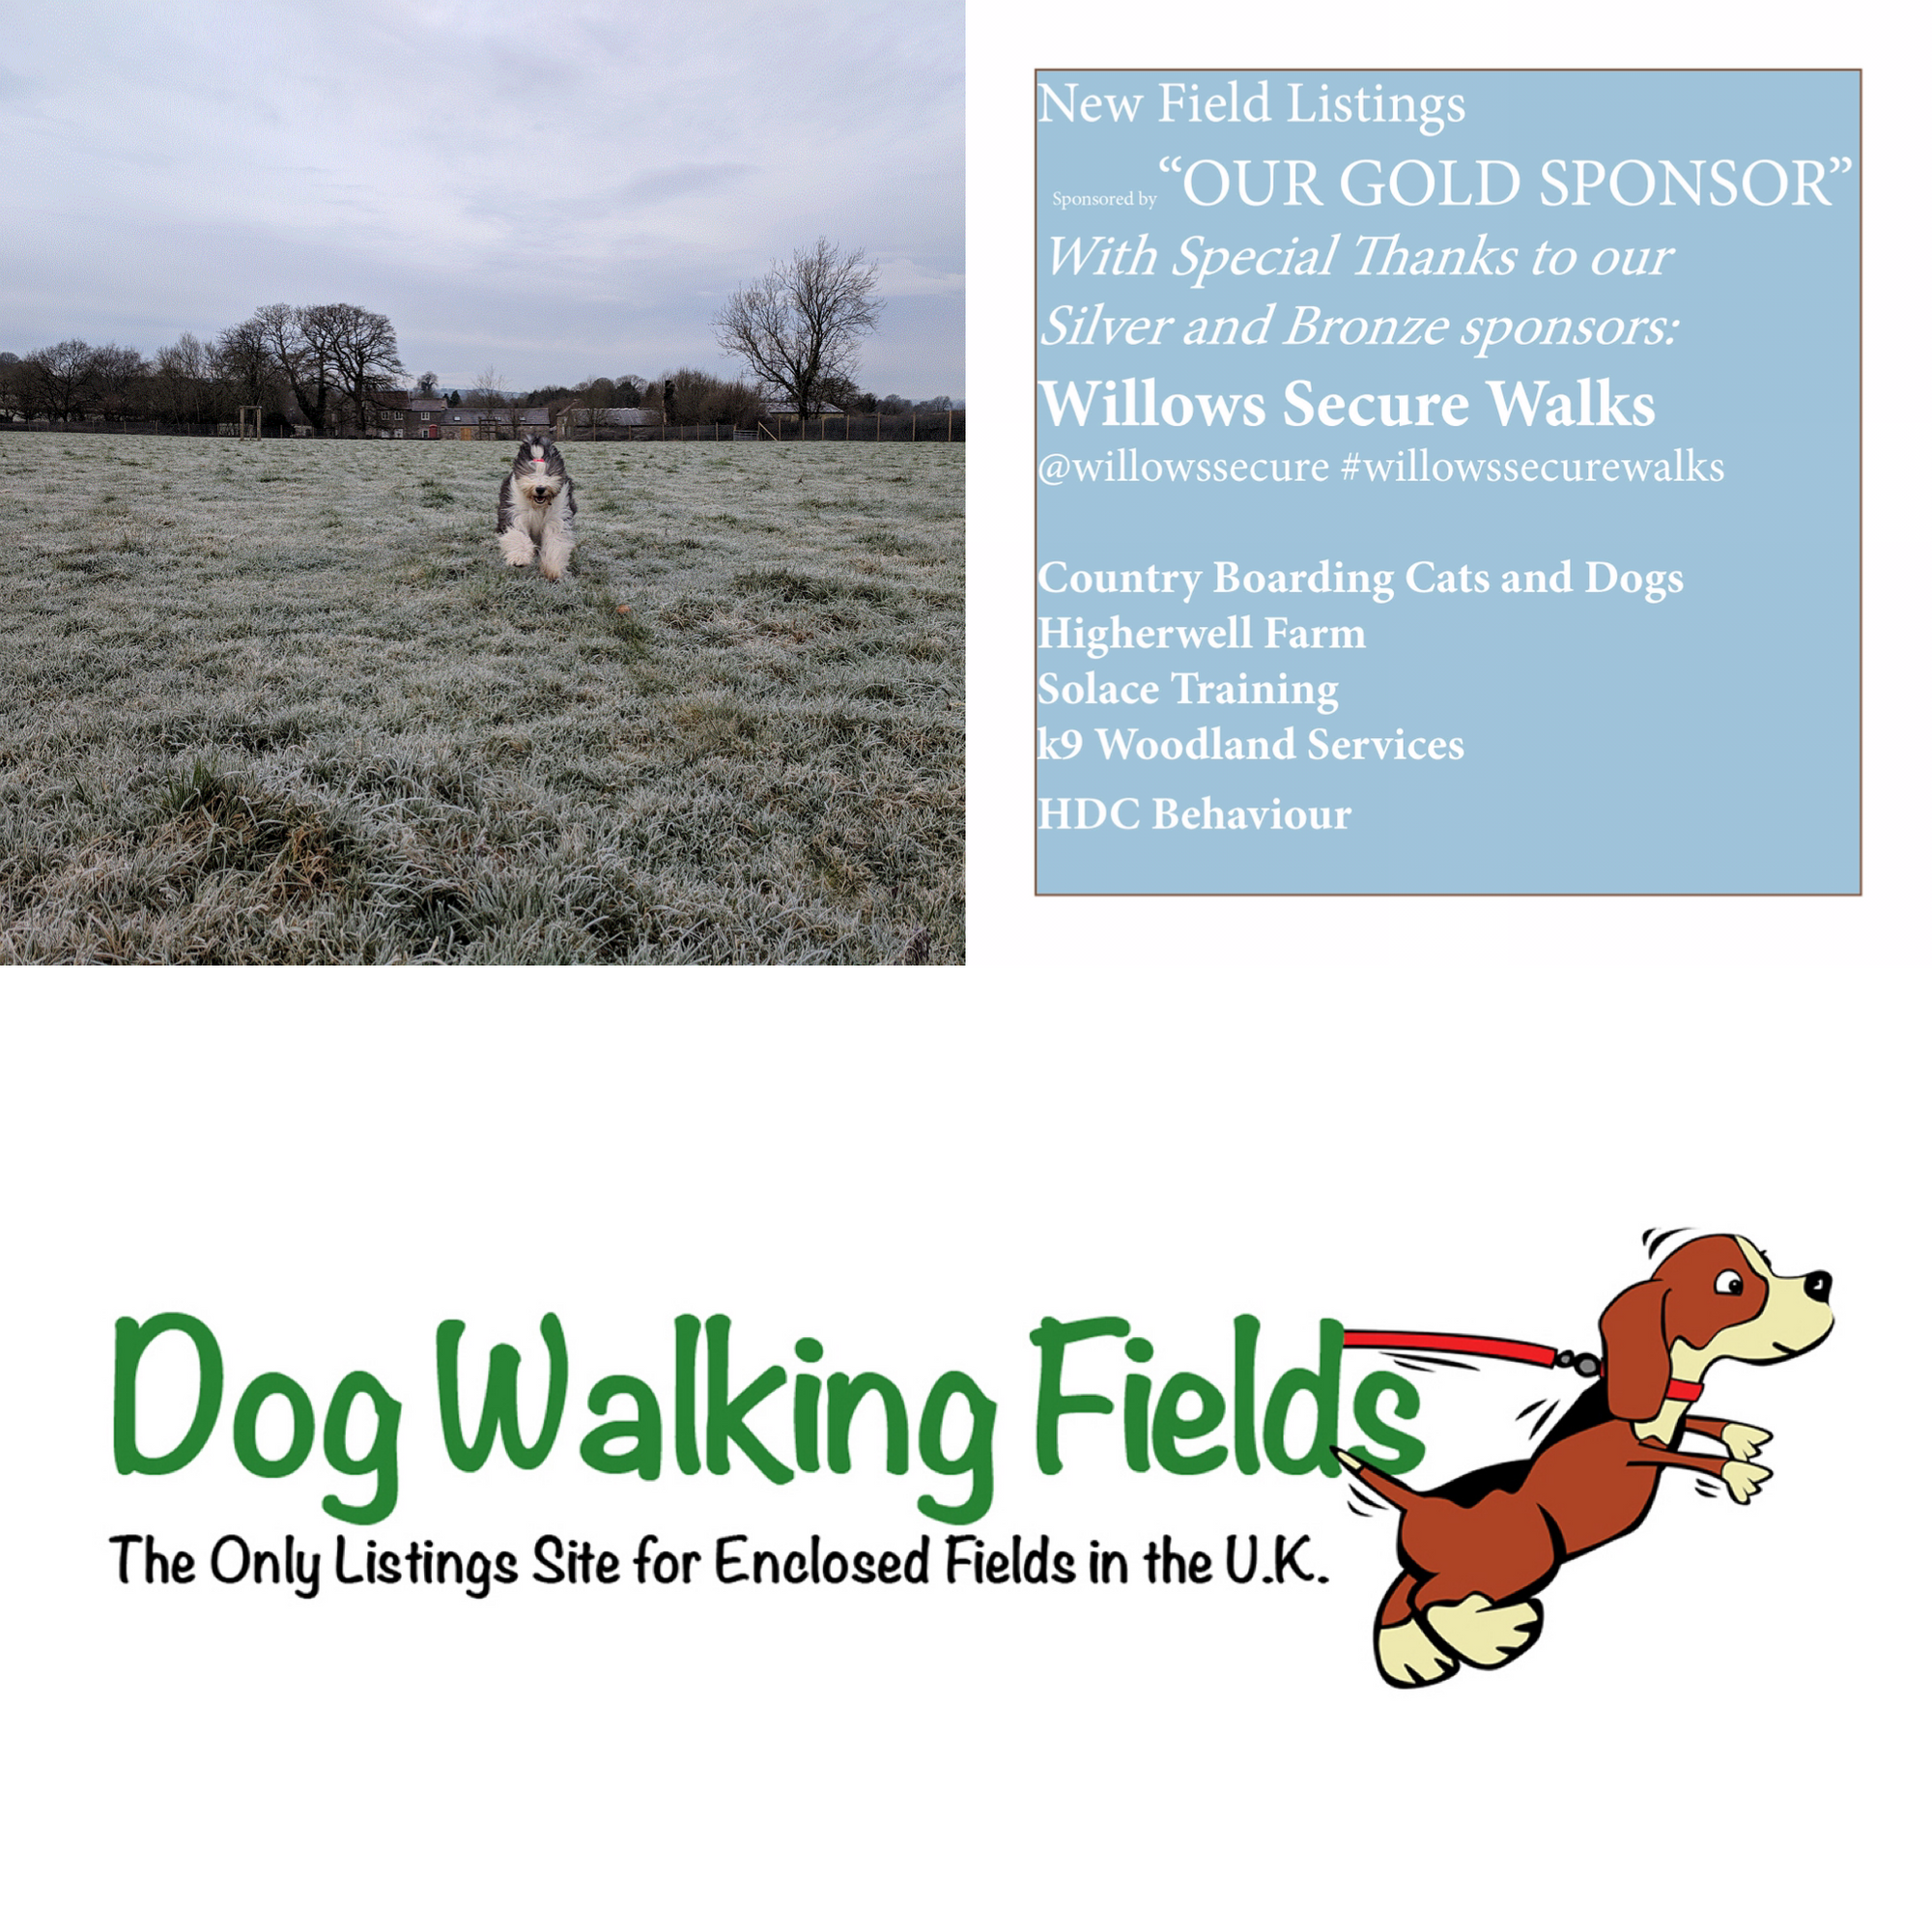 Fenton S Field Manor House Farm Stoke St Michael Radstock Somerset Ba3 5ld Secure Dog Exercise Field In Somerse Dog Kennel Cover Dog Walking Dog Exercise